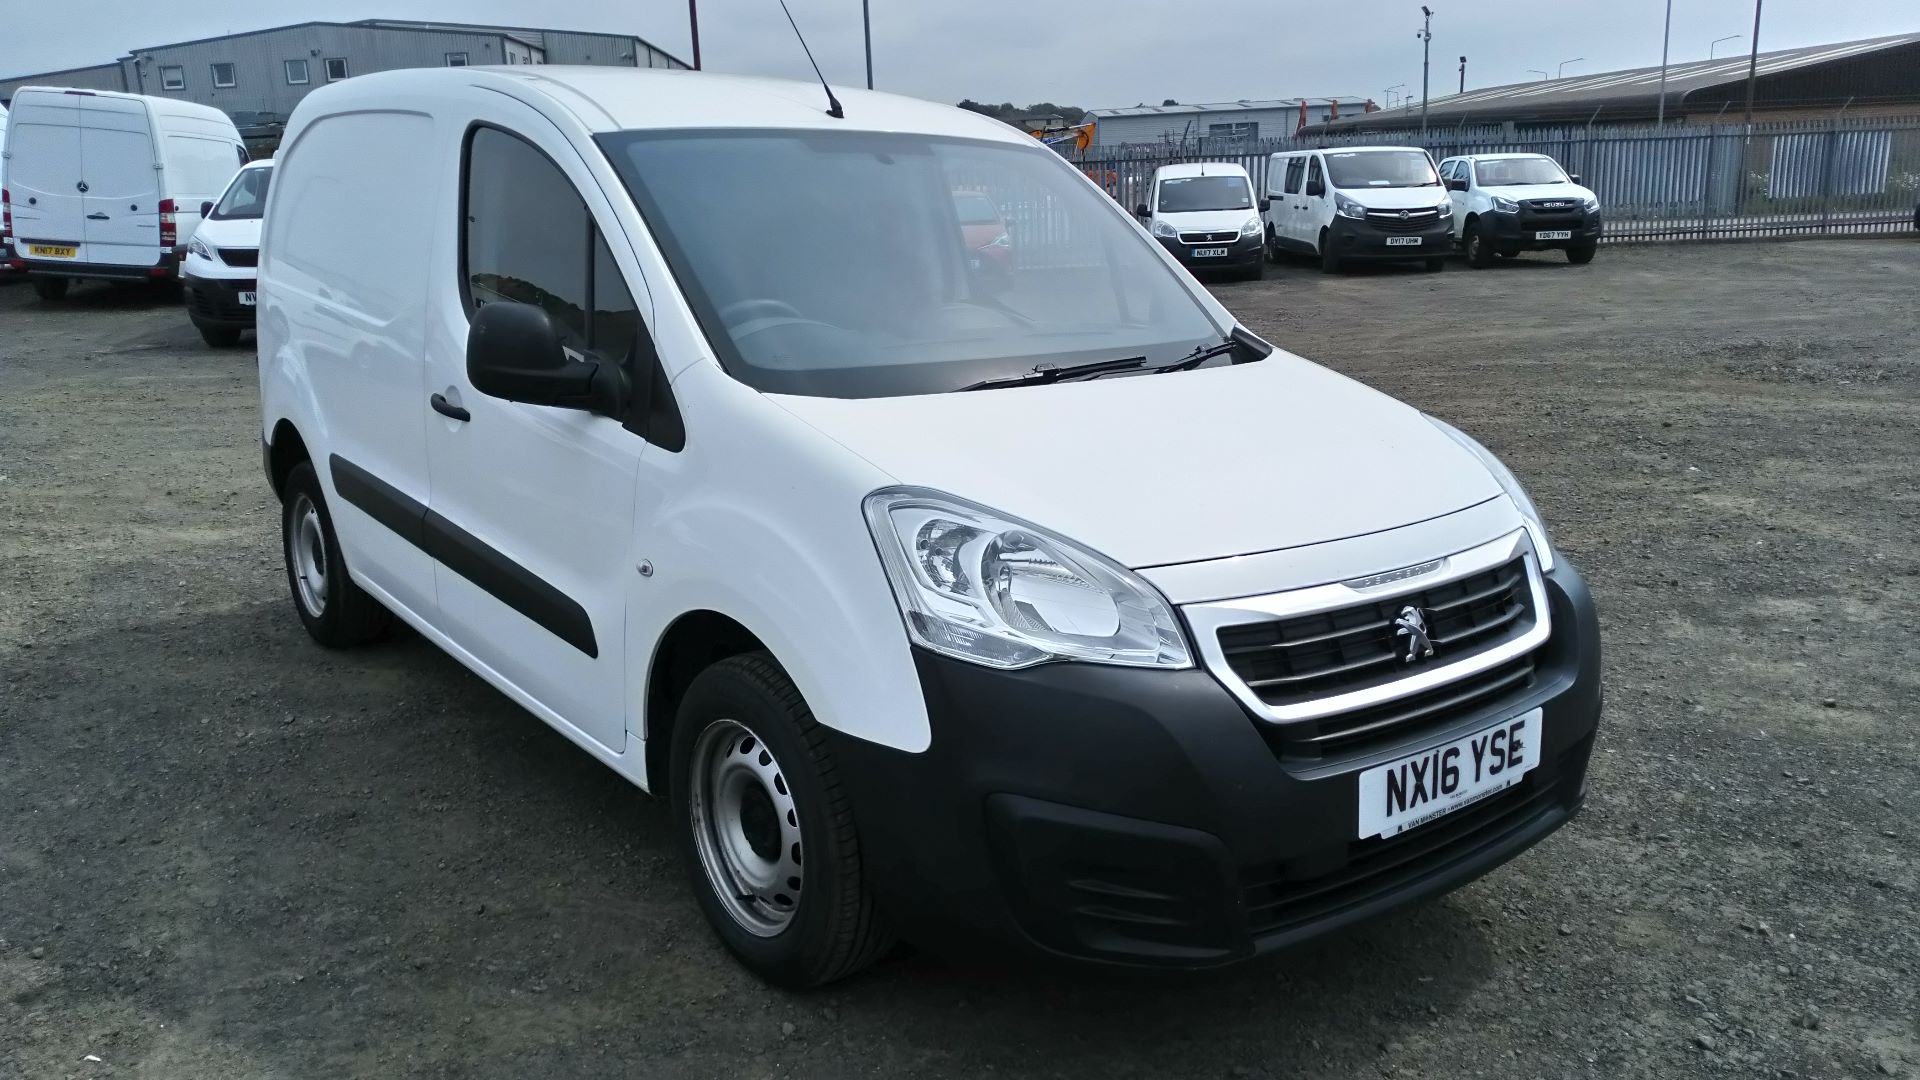 2016 Peugeot Partner 850 S 1.6 Hdi 92 Van [Sld] Speed Limited 56MPH (NX16YSE)